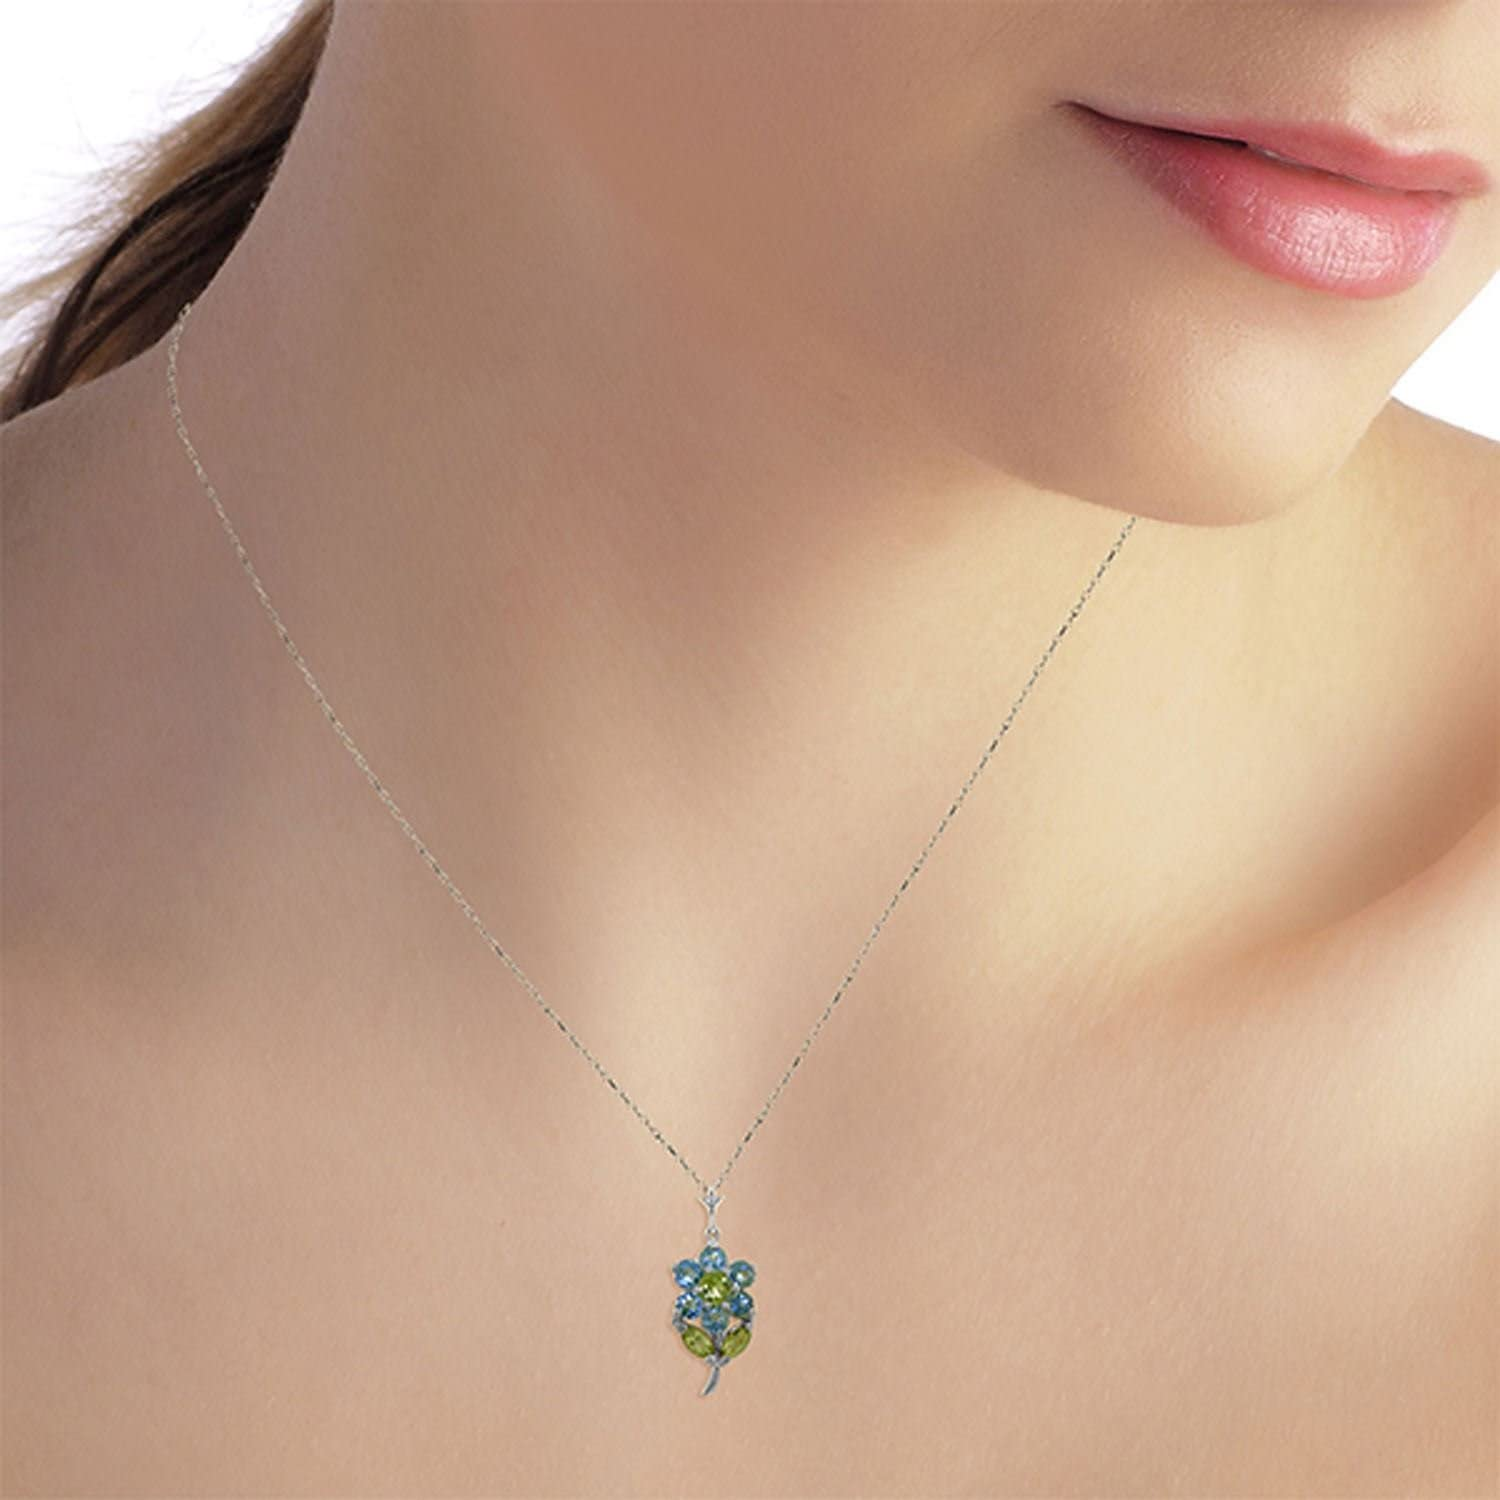 ALARRI 1.06 Carat 14K Solid White Gold Flower Necklace Blue Topaz Peridot with 24 Inch Chain Length